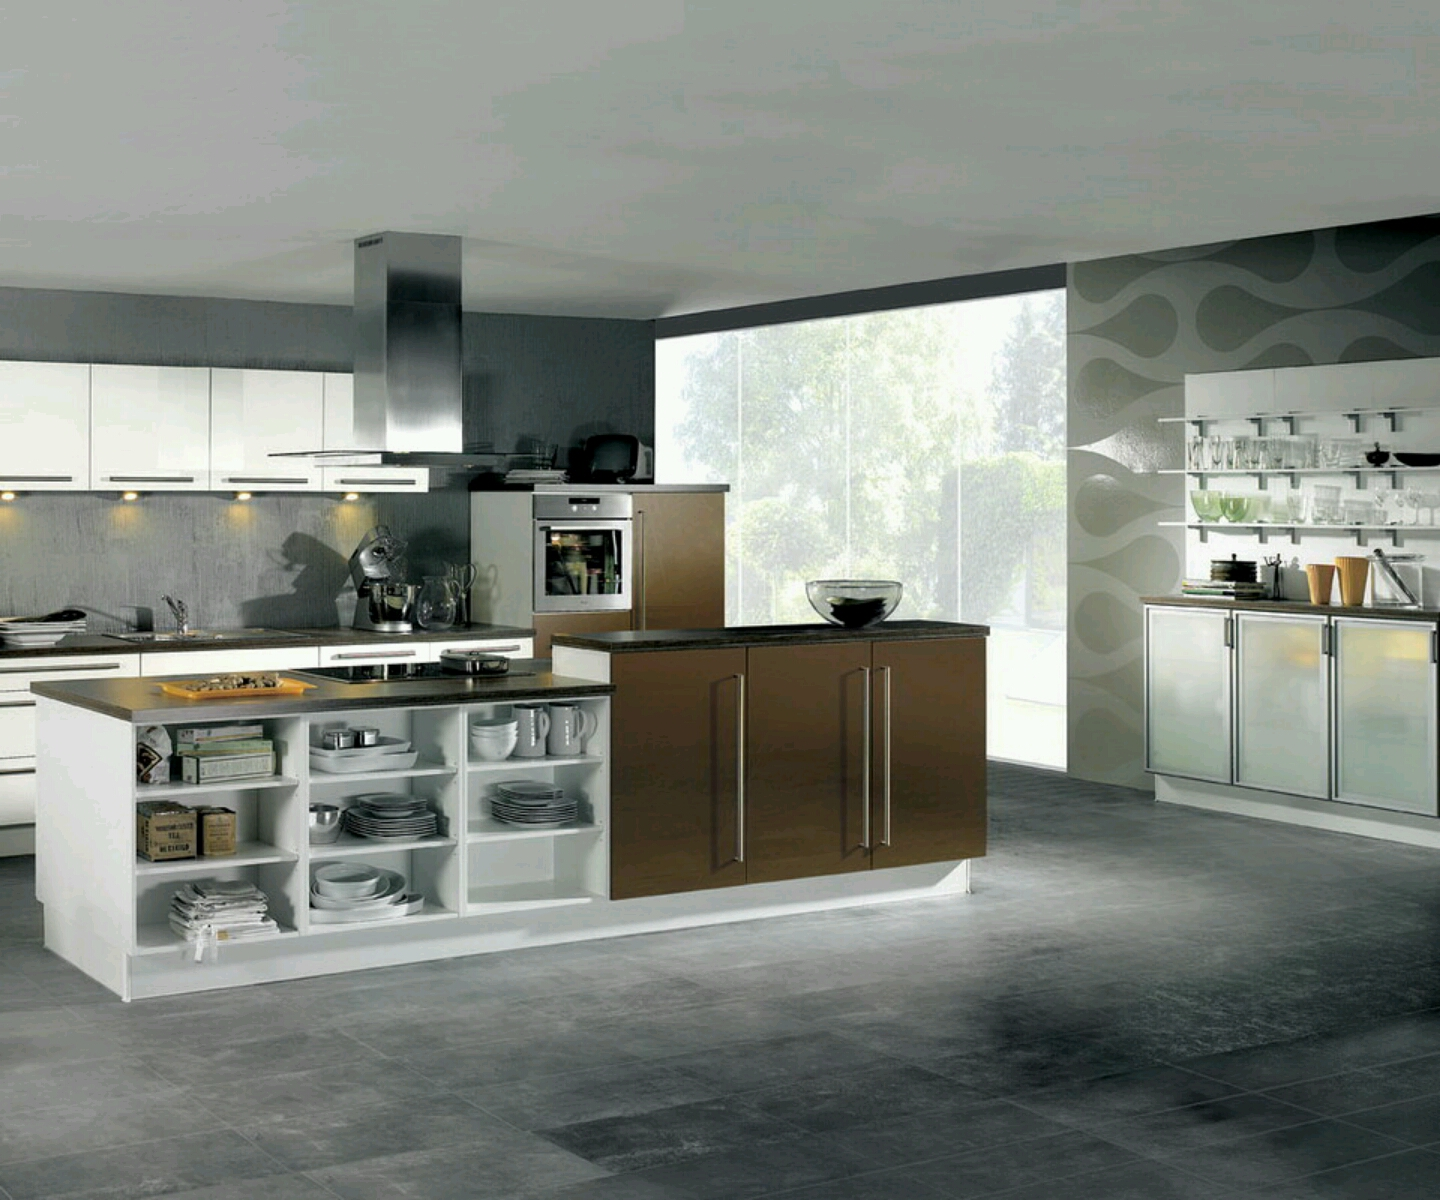 New Home Designs Latest Kitchen Cabinets Designs Modern: New Home Designs Latest.: Ultra Modern Kitchen Designs Ideas